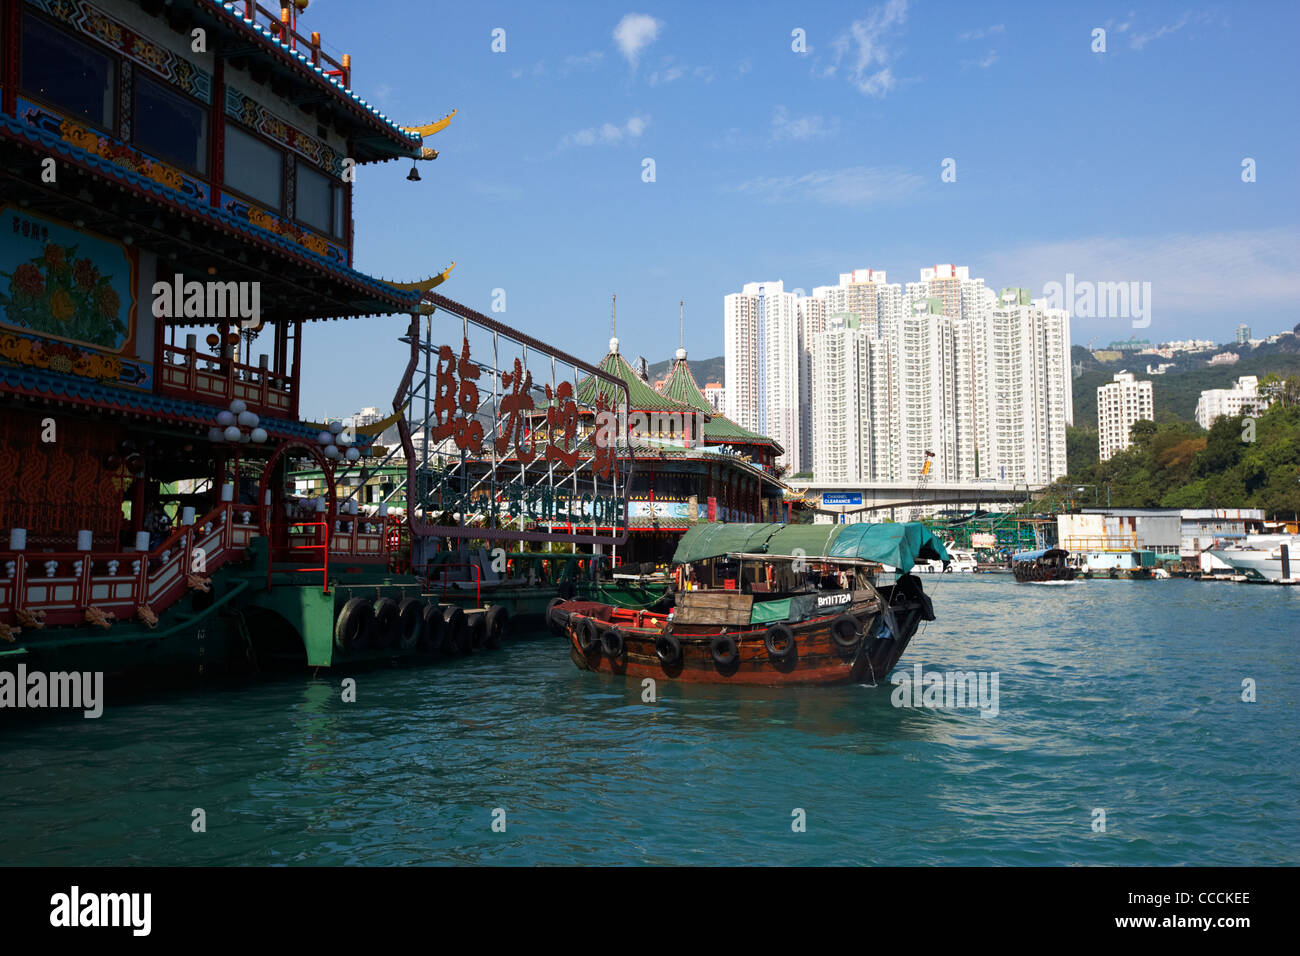 sampan ferry boat docking at the jumbo floating restaurant aberdeen harbour hong kong hksar china asia - Stock Image